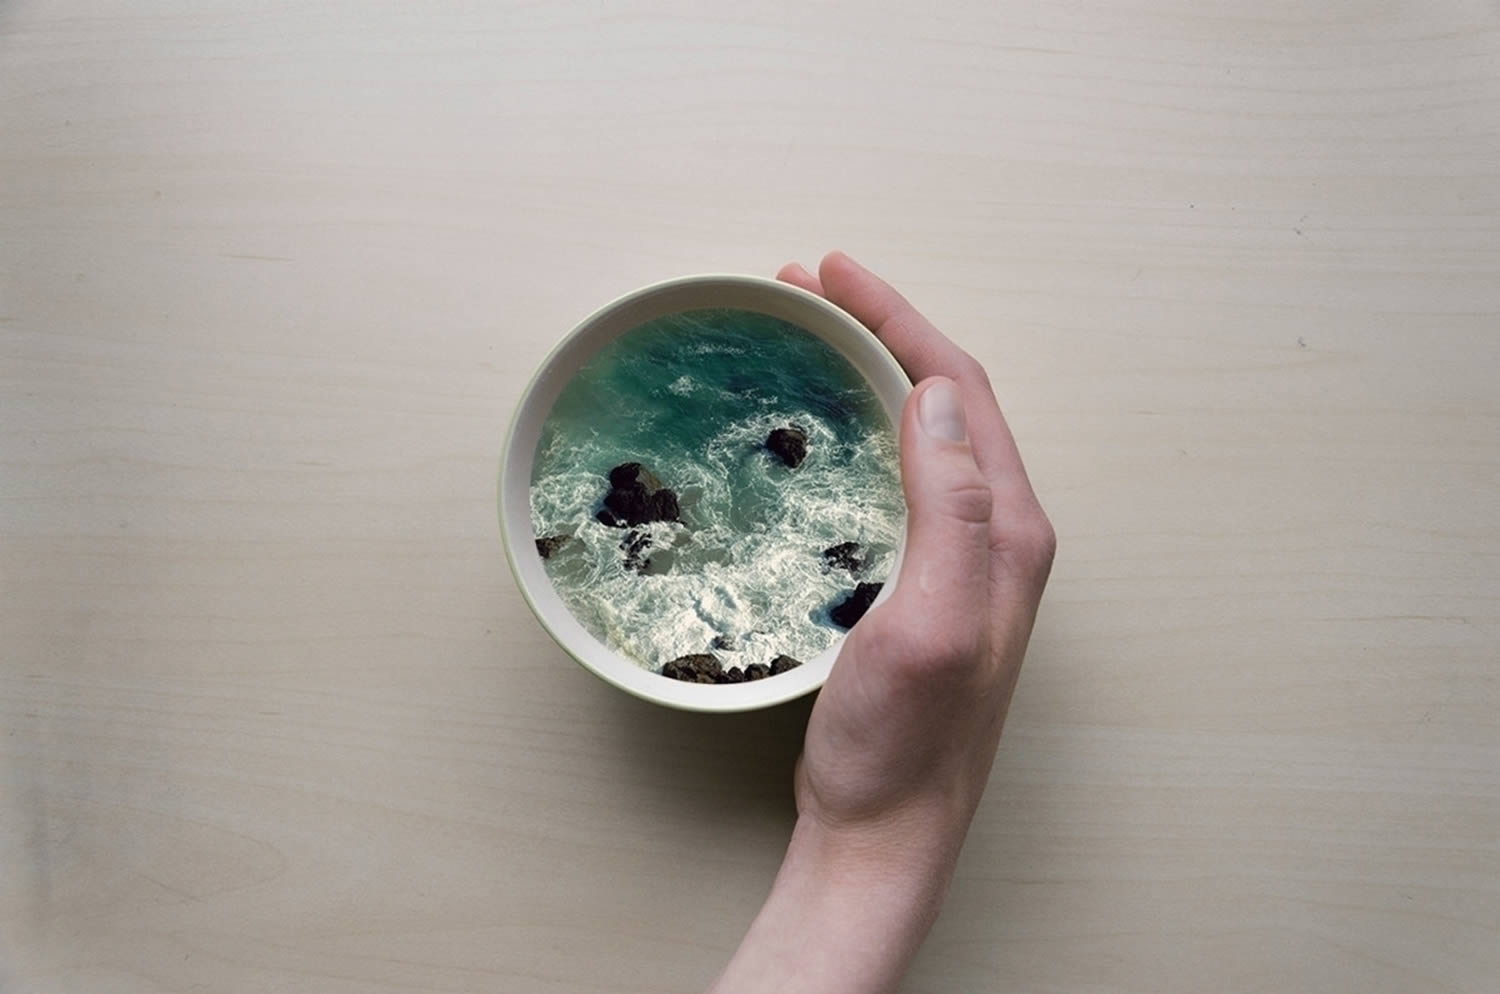 rocks and waves in a cup, manipulation